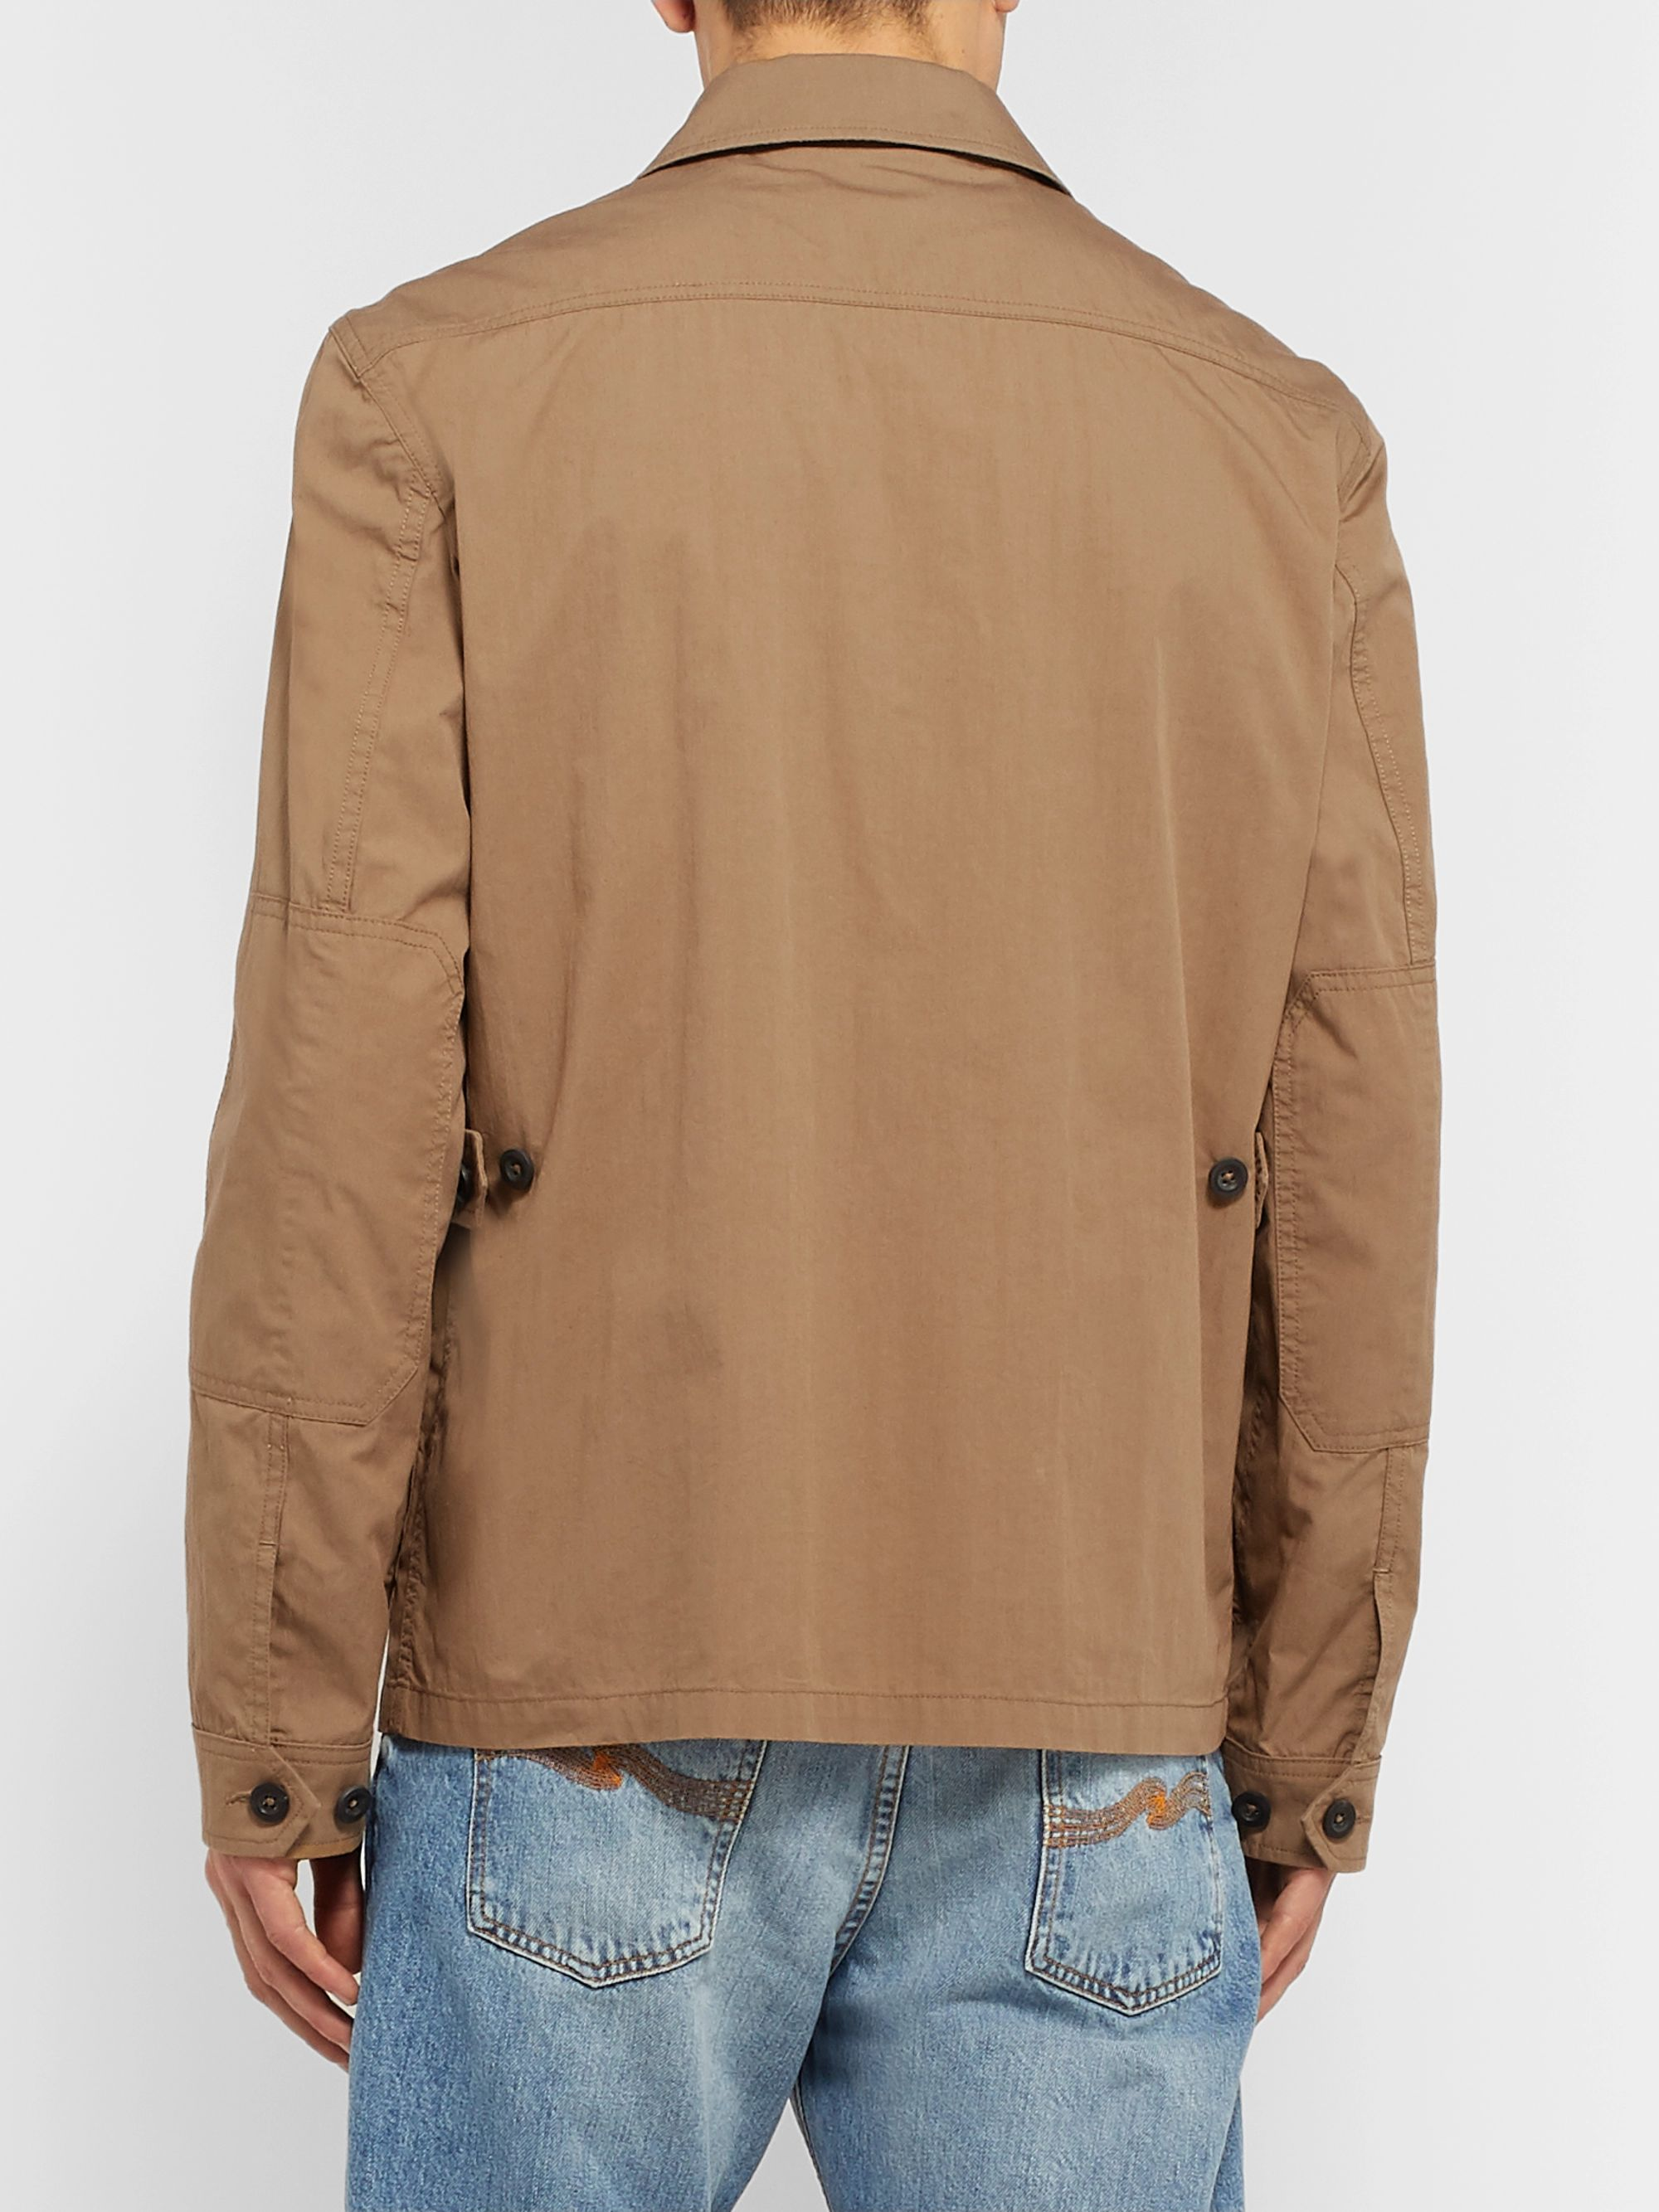 Mr P. Cotton and Nylon-Blend Field Jacket